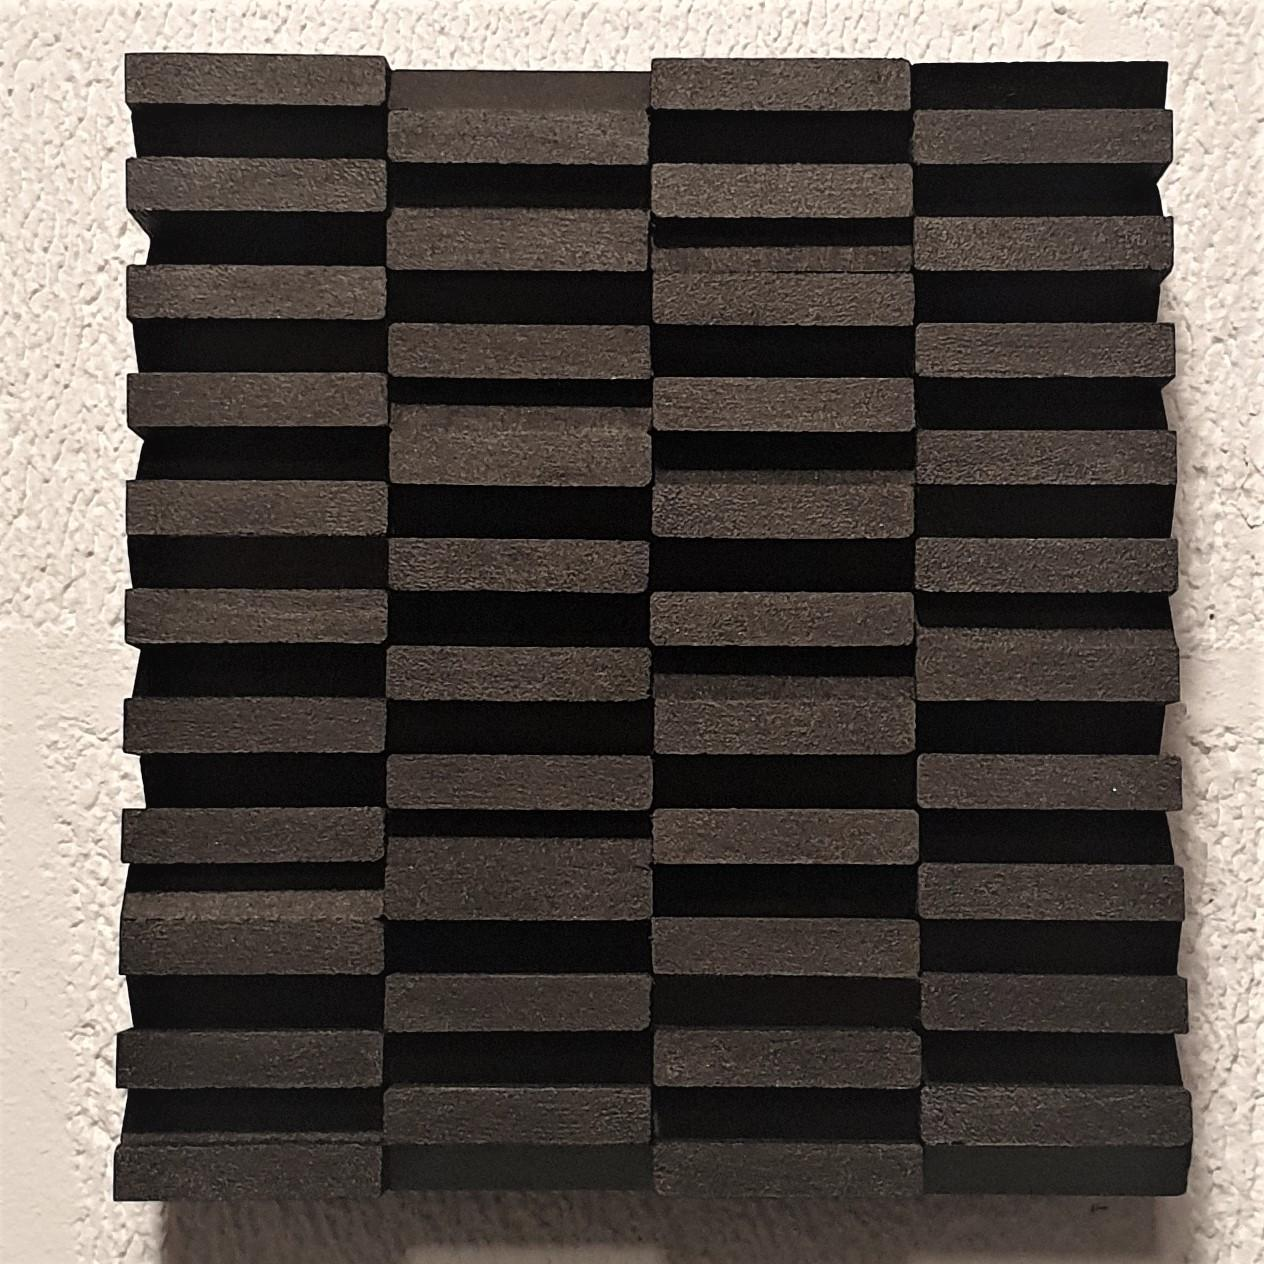 Intervalle IV 8/25 - black grey contemporary modern sculpture painting relief